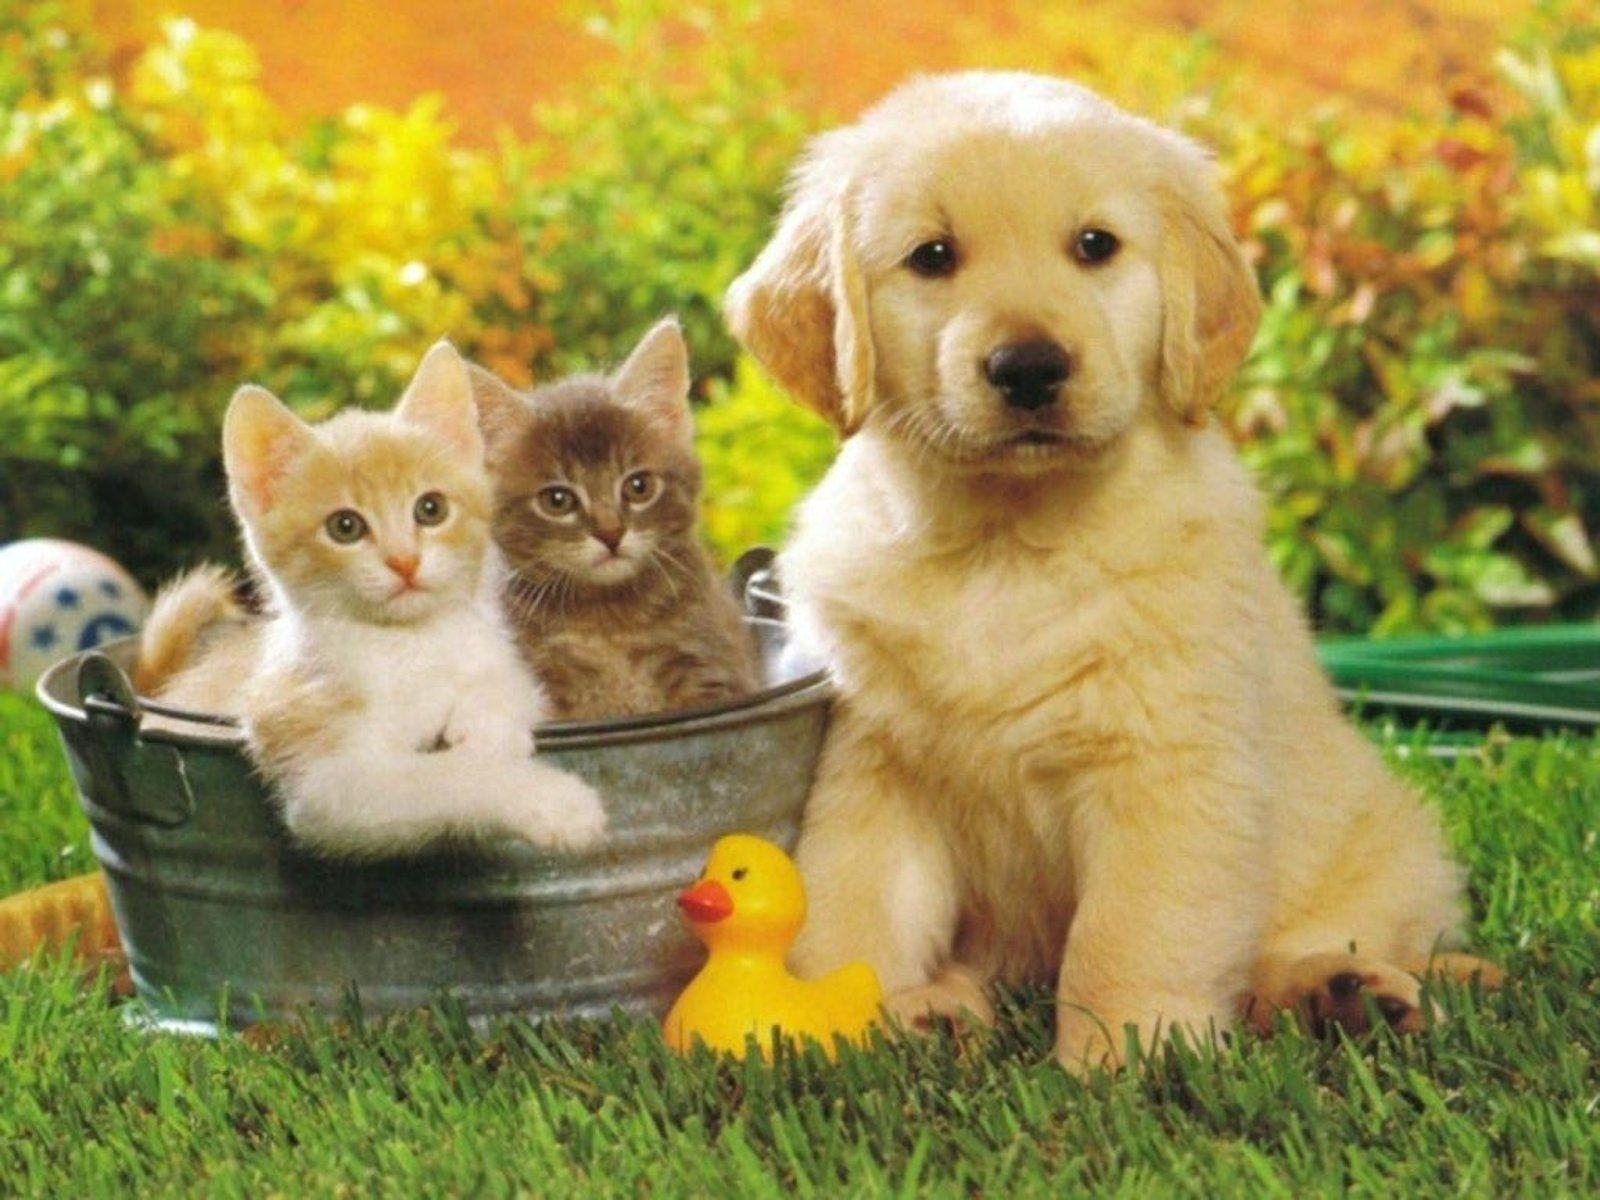 10 Top Puppies And Kittens Wallpaper FULL HD 1080p For PC Desktop